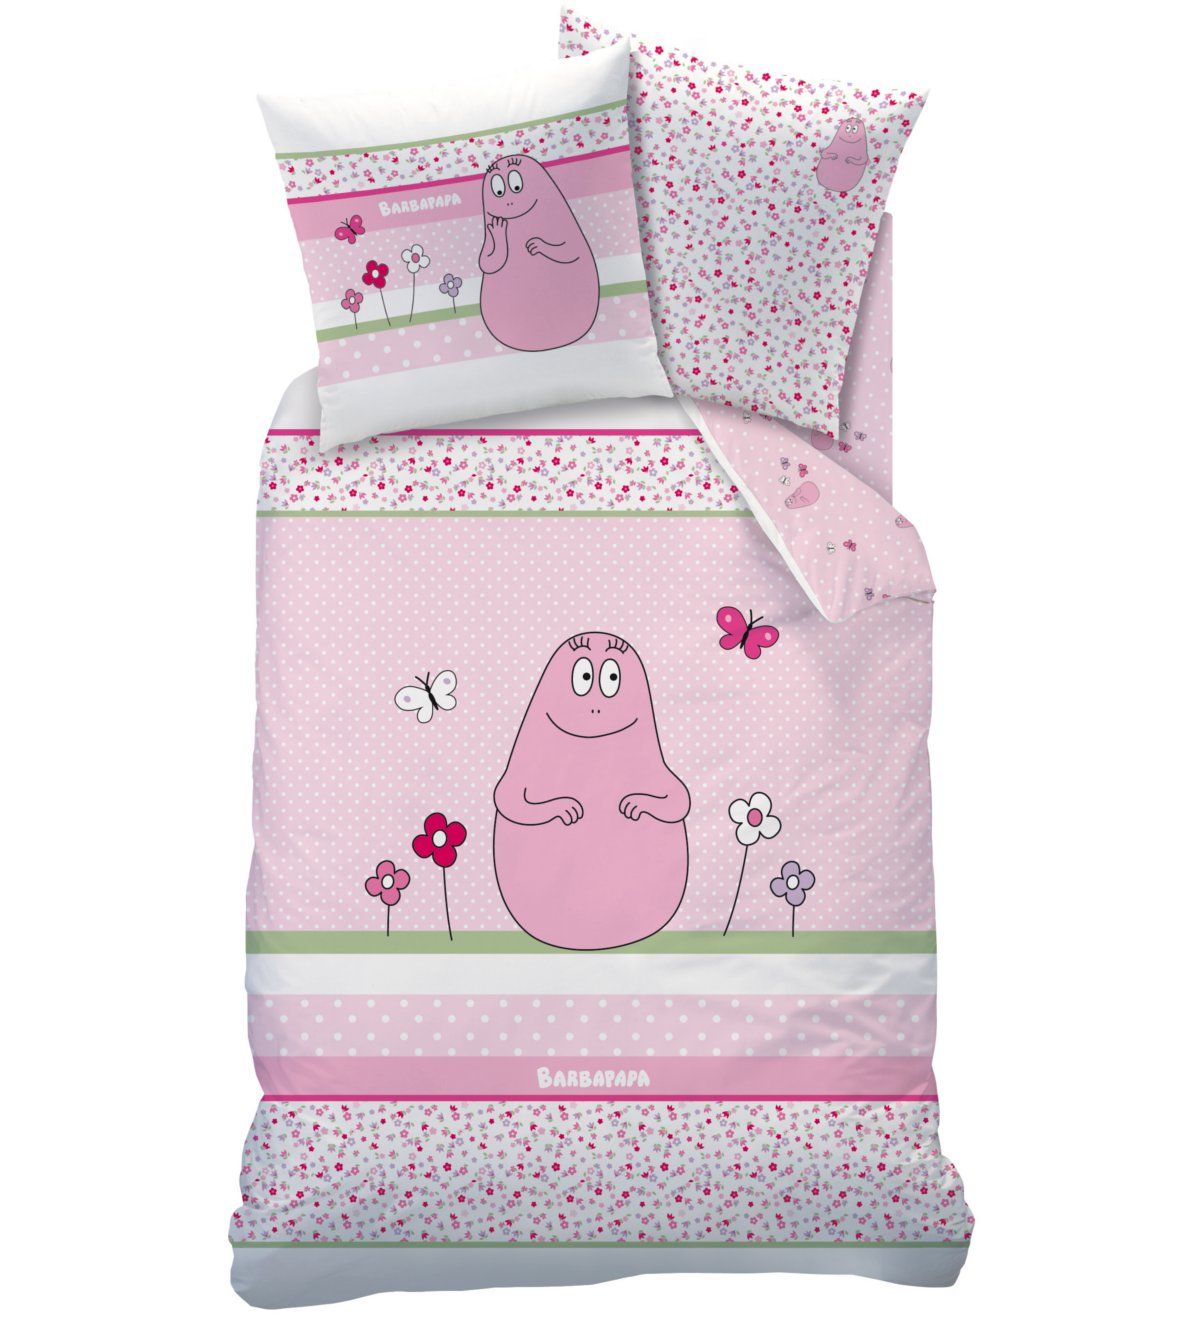 housse de couette barbapapa 140 x 200 cm esprit fleuri parure de lit decokids tous. Black Bedroom Furniture Sets. Home Design Ideas